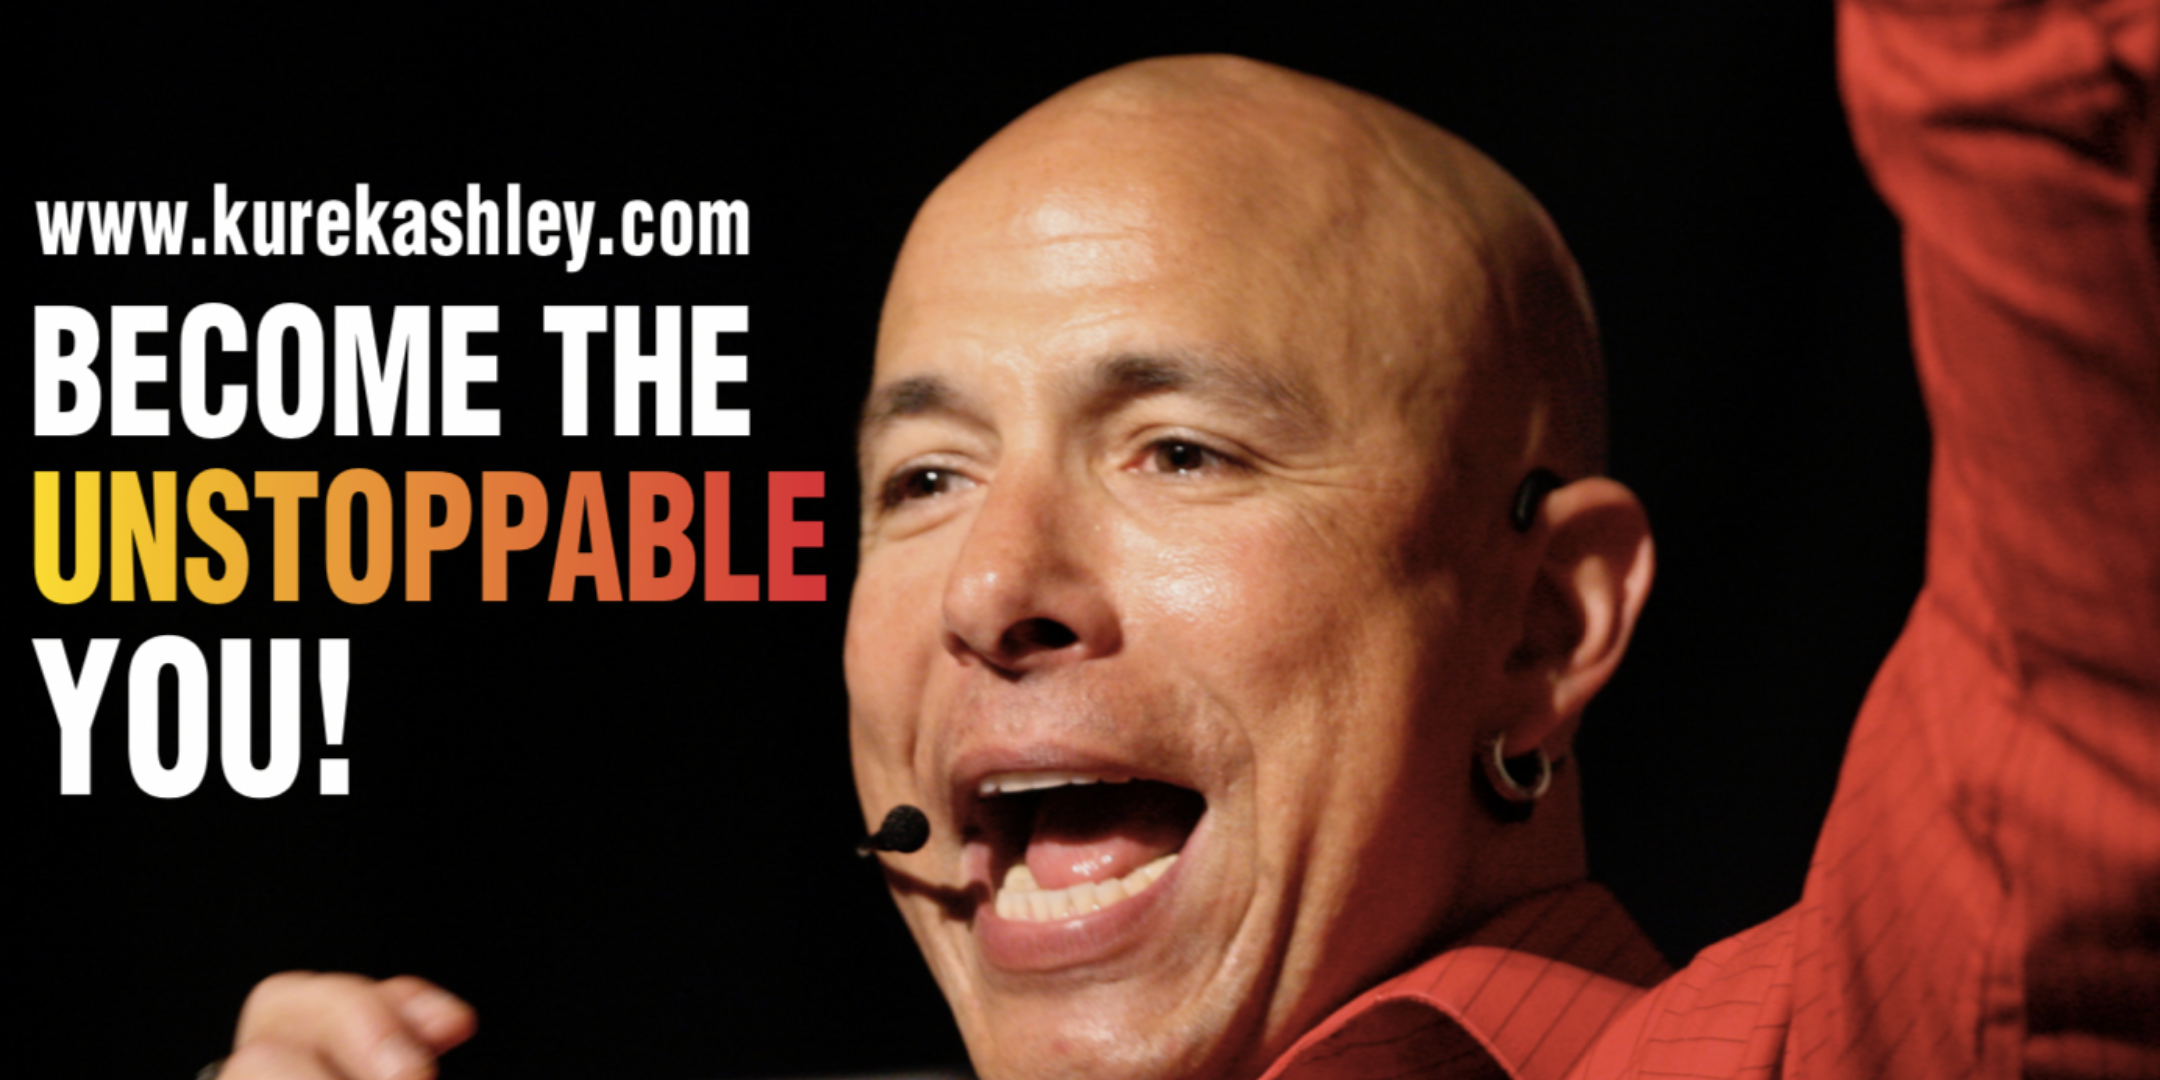 Become The Unstoppable You with Kurek Ashley - Sydney